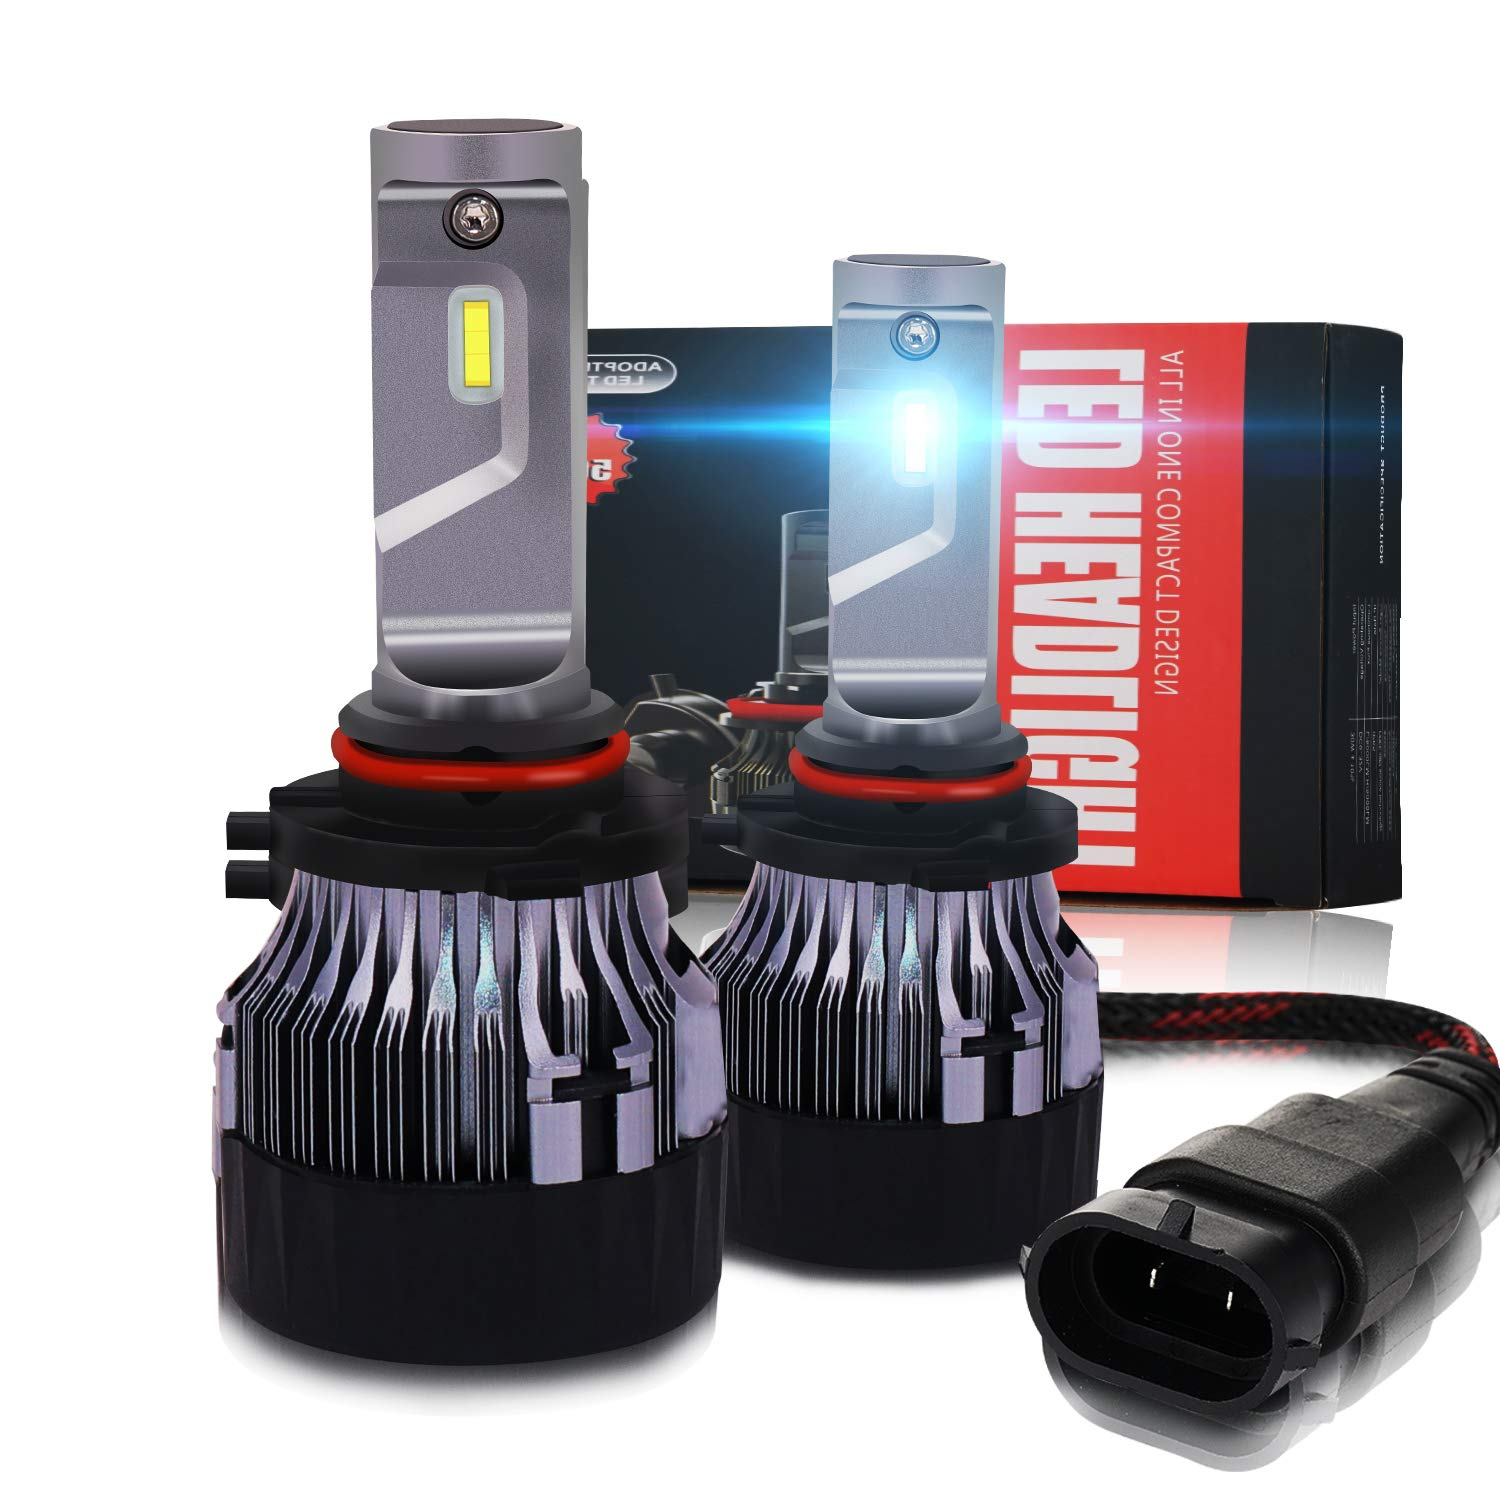 EASTBULL Newest 9005 HB3 LED Headlight Bulbs Conversion Kit CREE Chips 10000LM Extreme Super Bright IP67 LED Low/High Beam White Light All-in -one Headlamp Bulb Replacement(2 Pack)